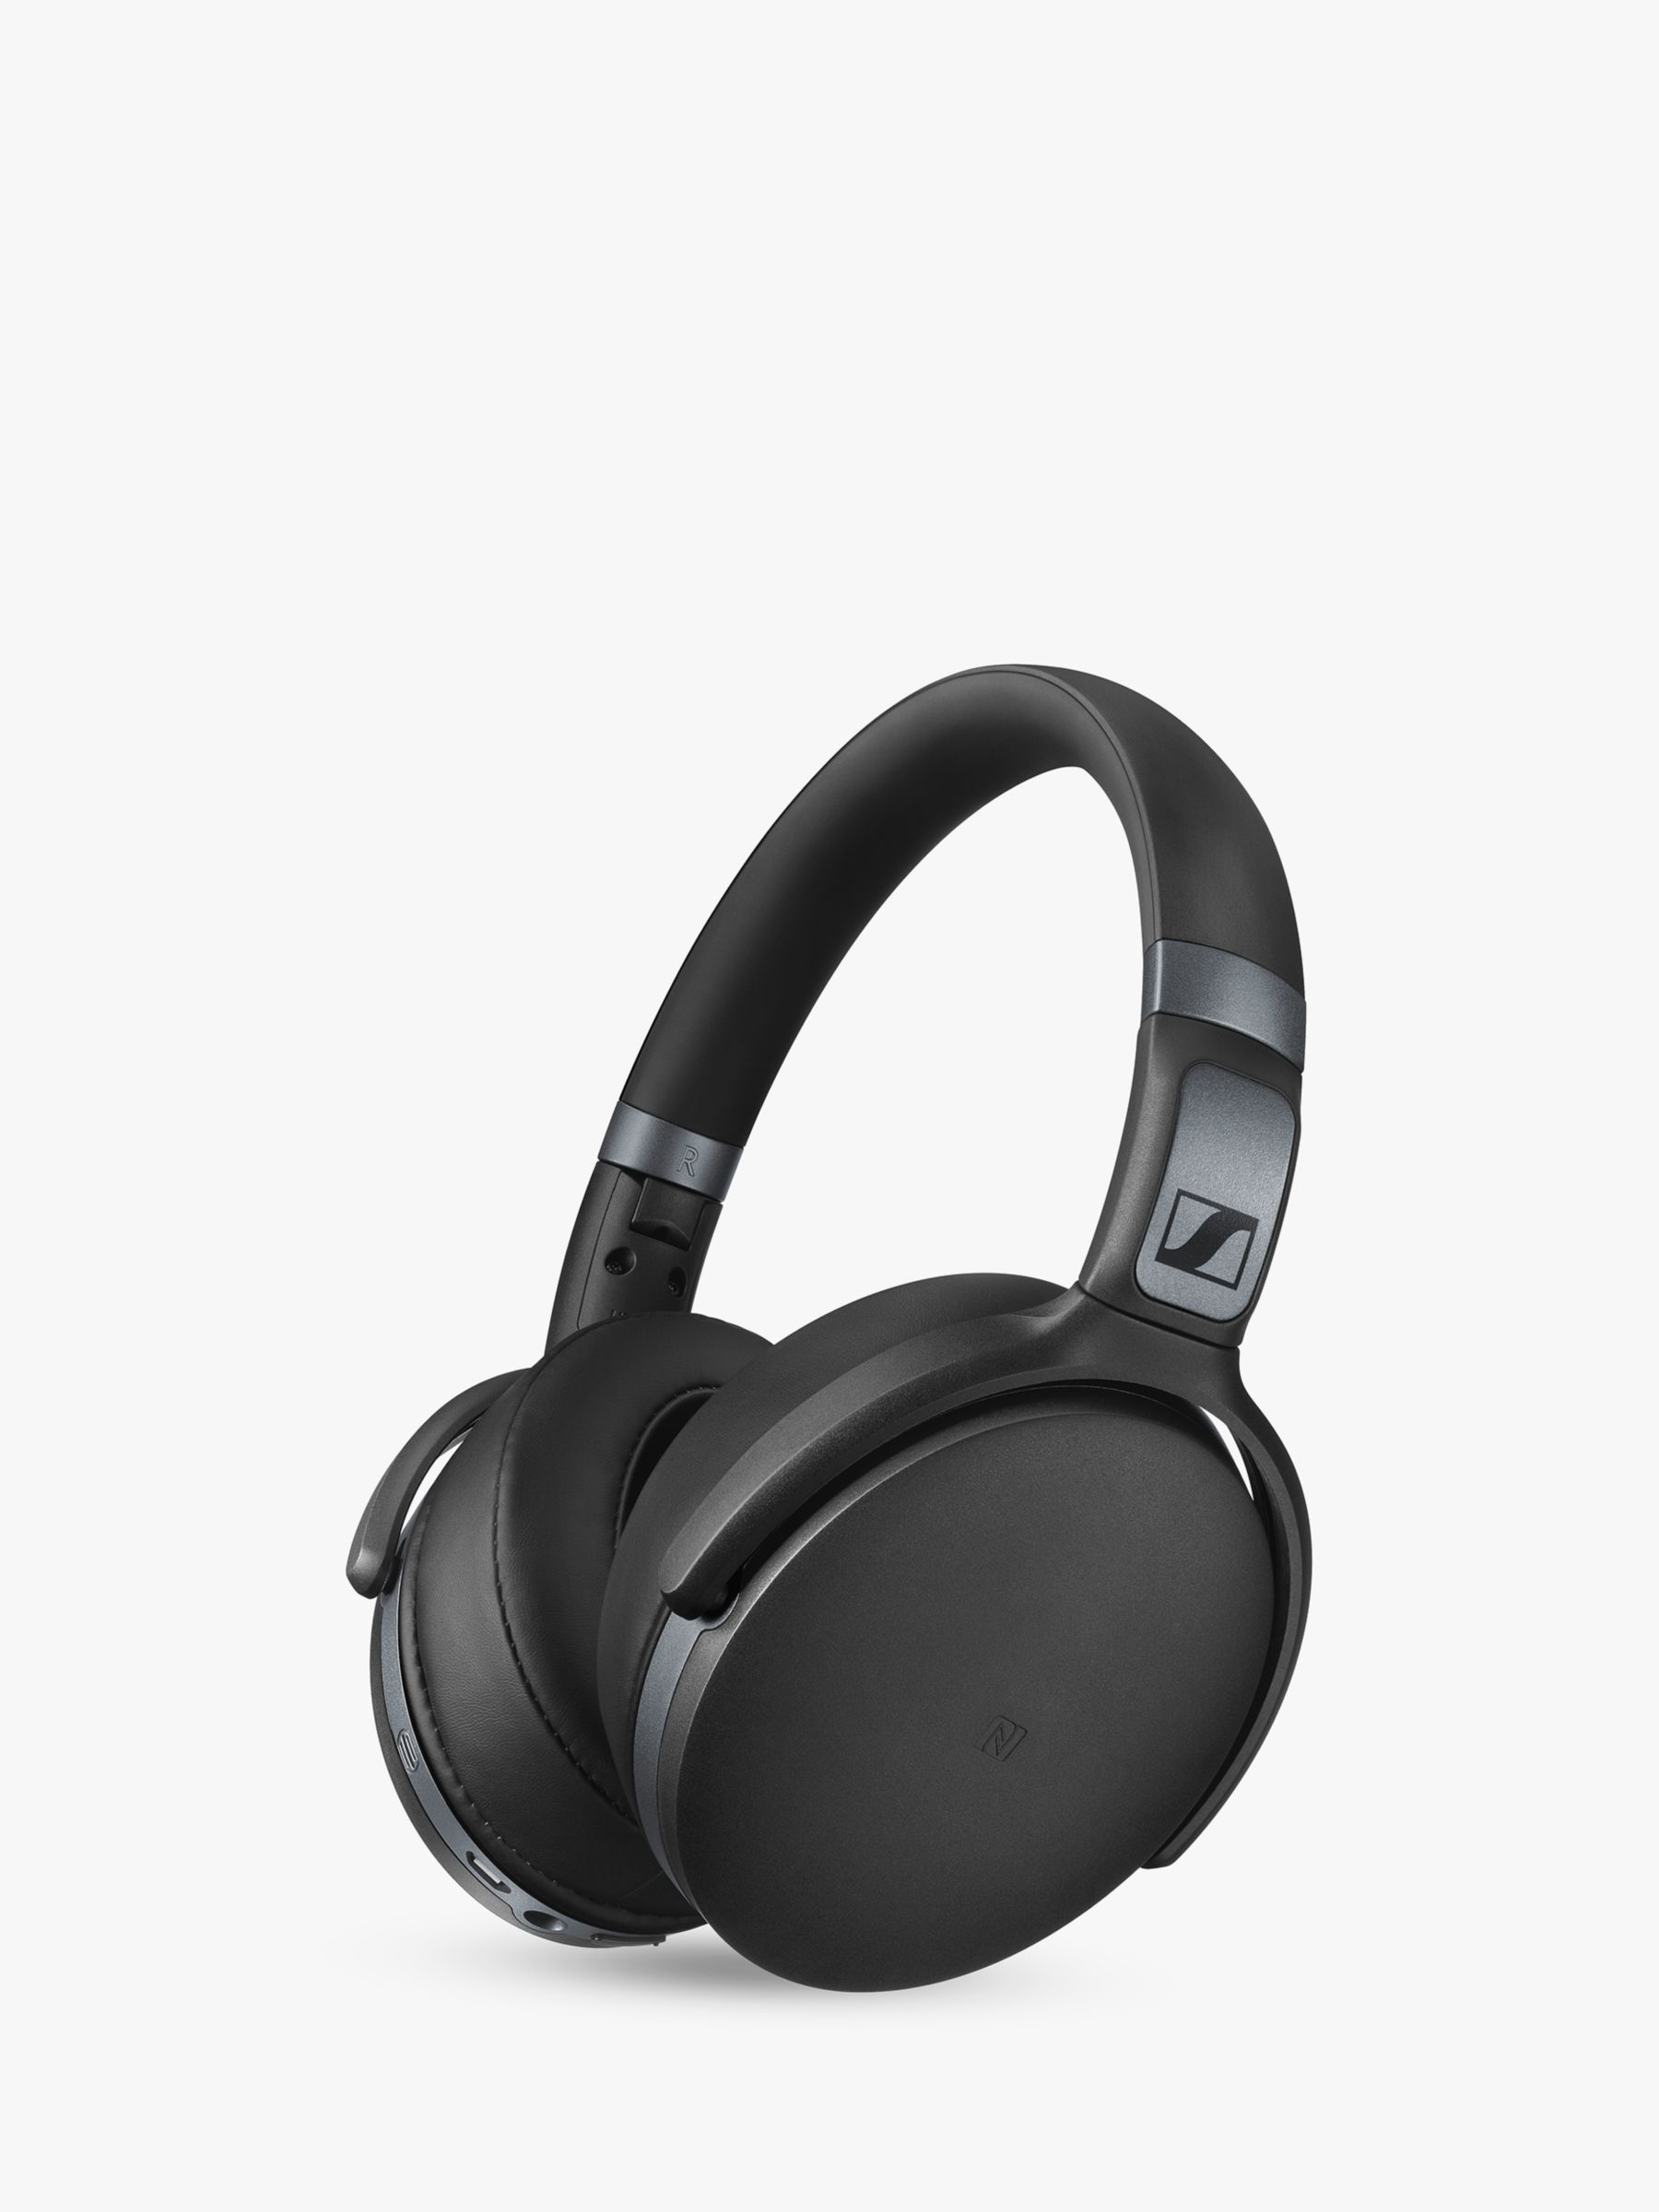 c66298ef2e6 Sennheiser HD 4.40 Bluetooth/NFC Wireless Over-Ear Headphones with Inline  Microphone & Remote, Black at John Lewis & Partners